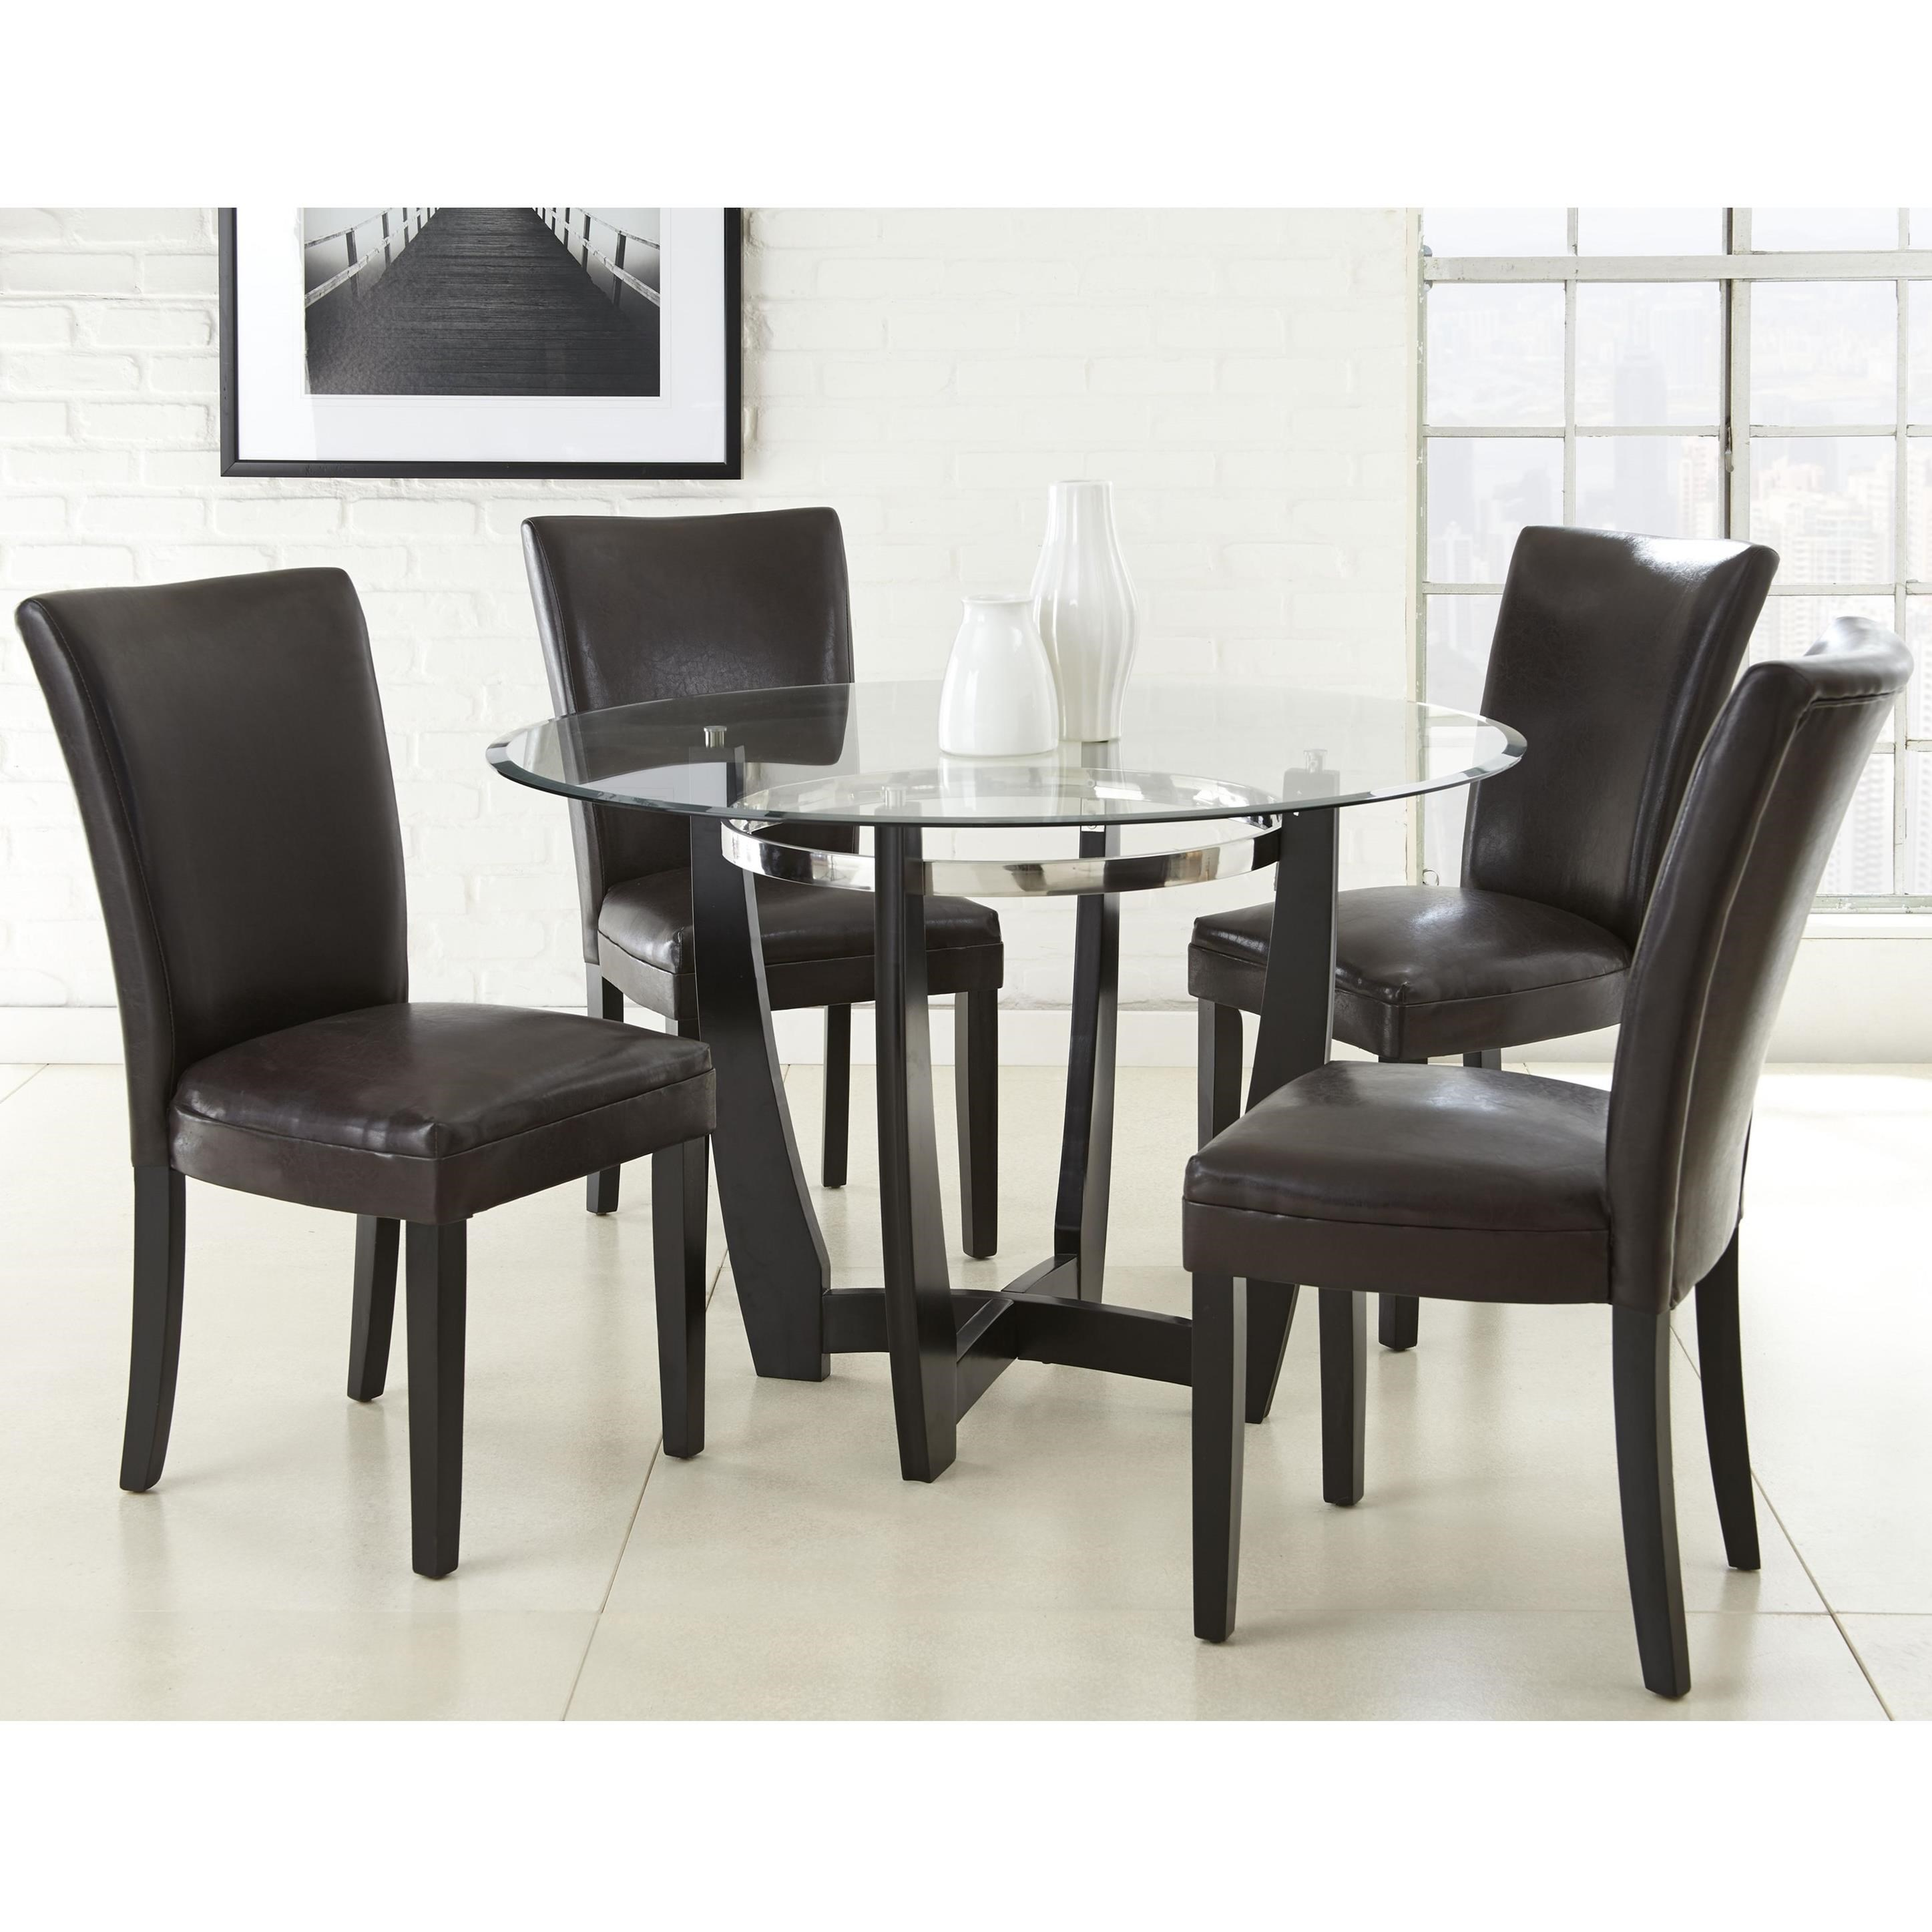 Steve Silver Matinee 5 Piece Dining Set - Item Number: MT480B+T+4xSK